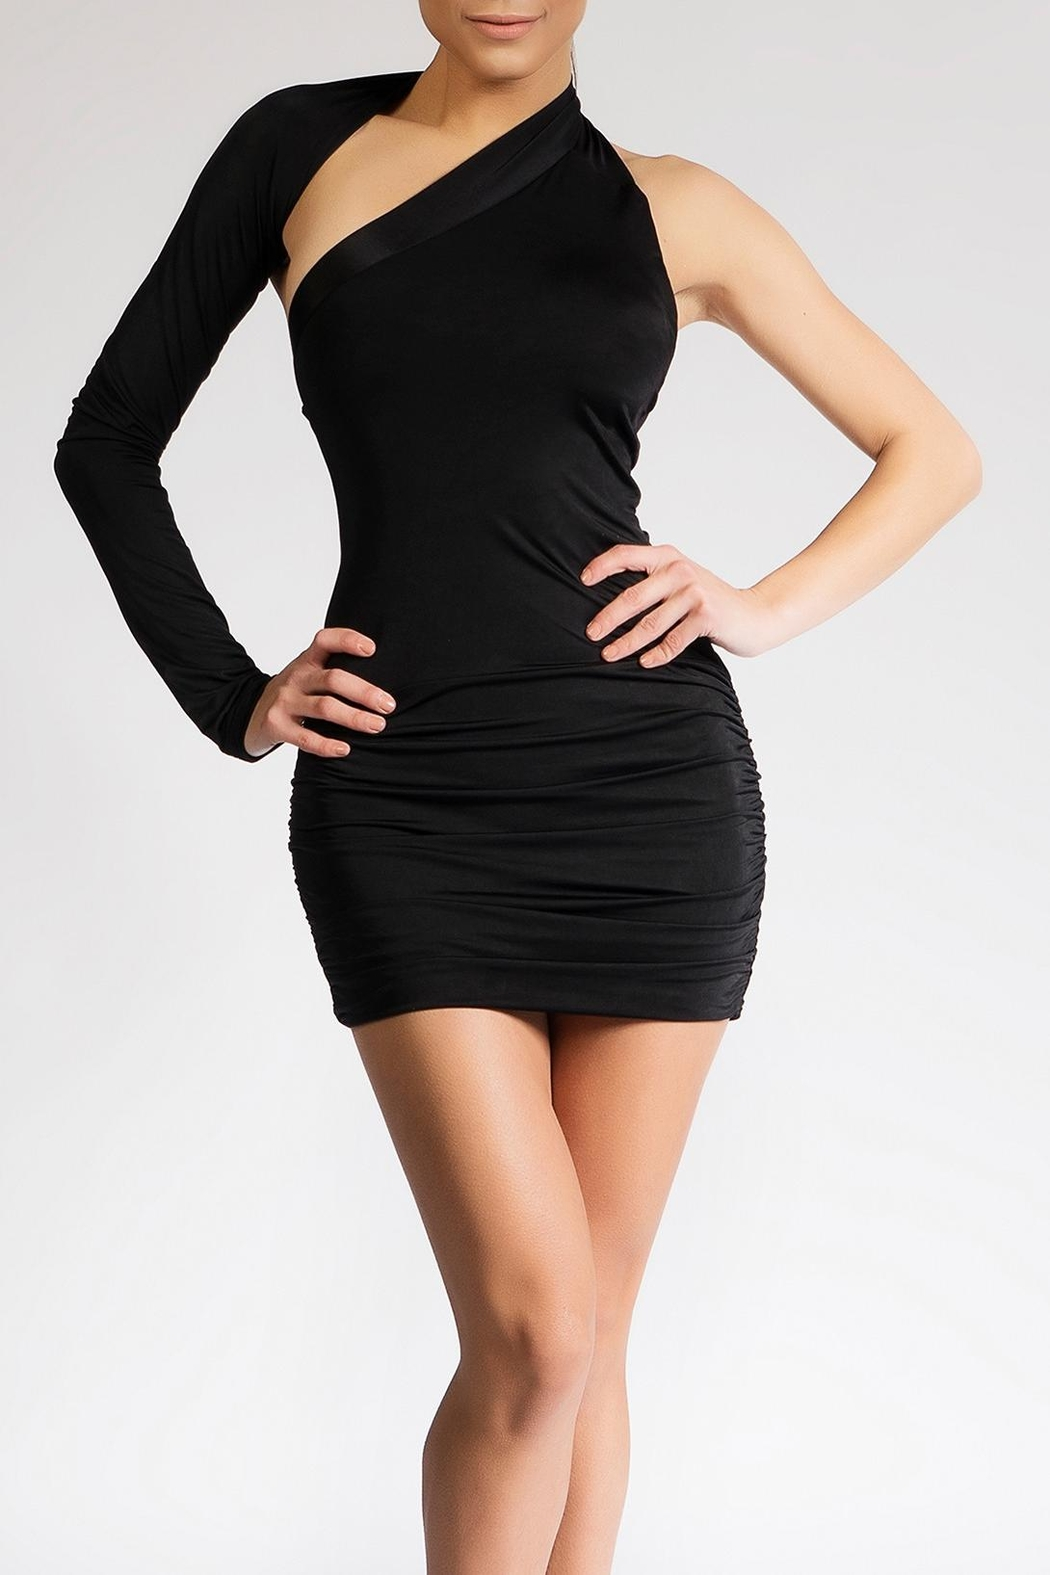 Savee Couture Black One Shoulder Dress - Main Image